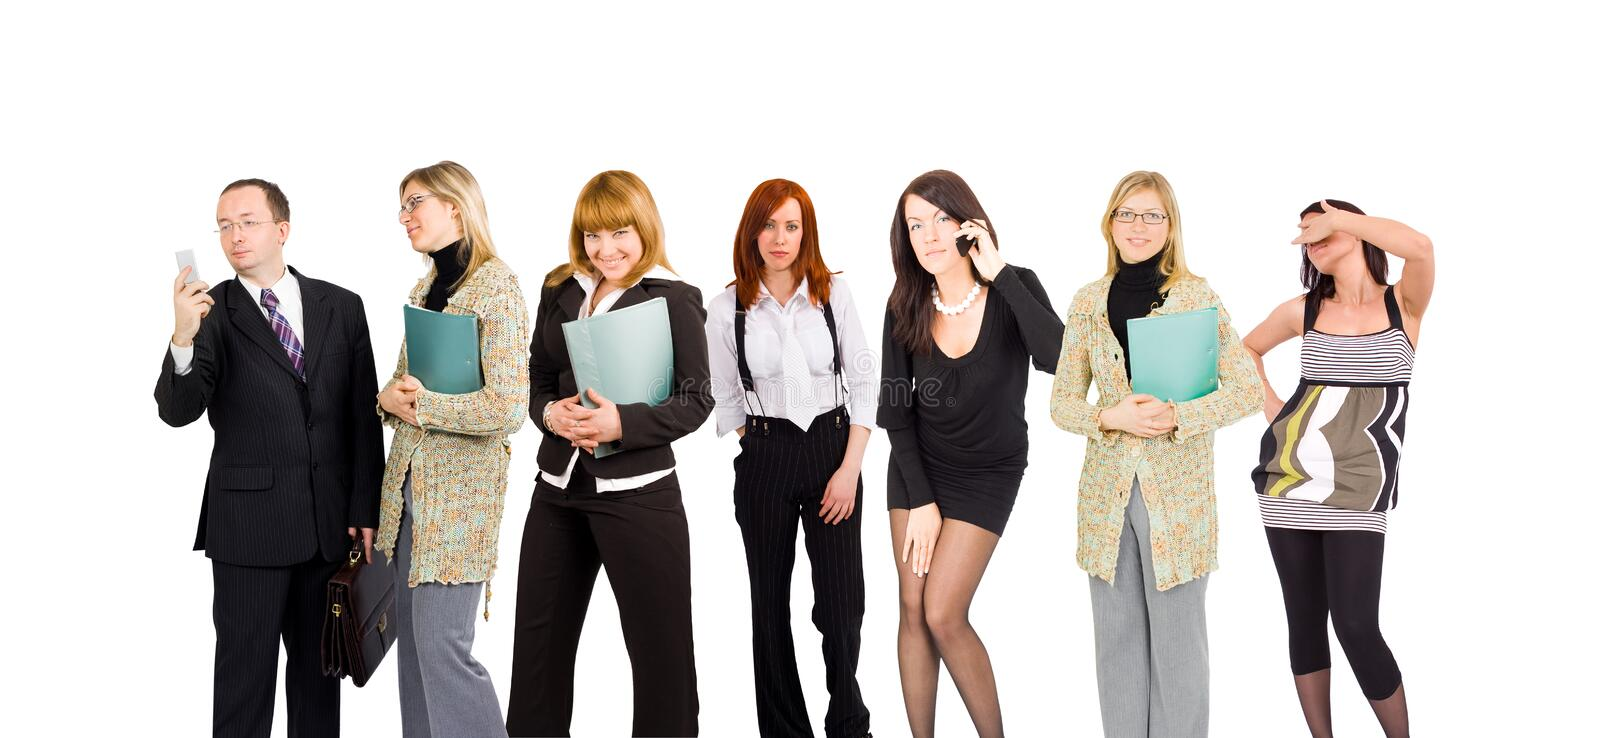 Download Business people stock image. Image of colleagues, group - 5208153